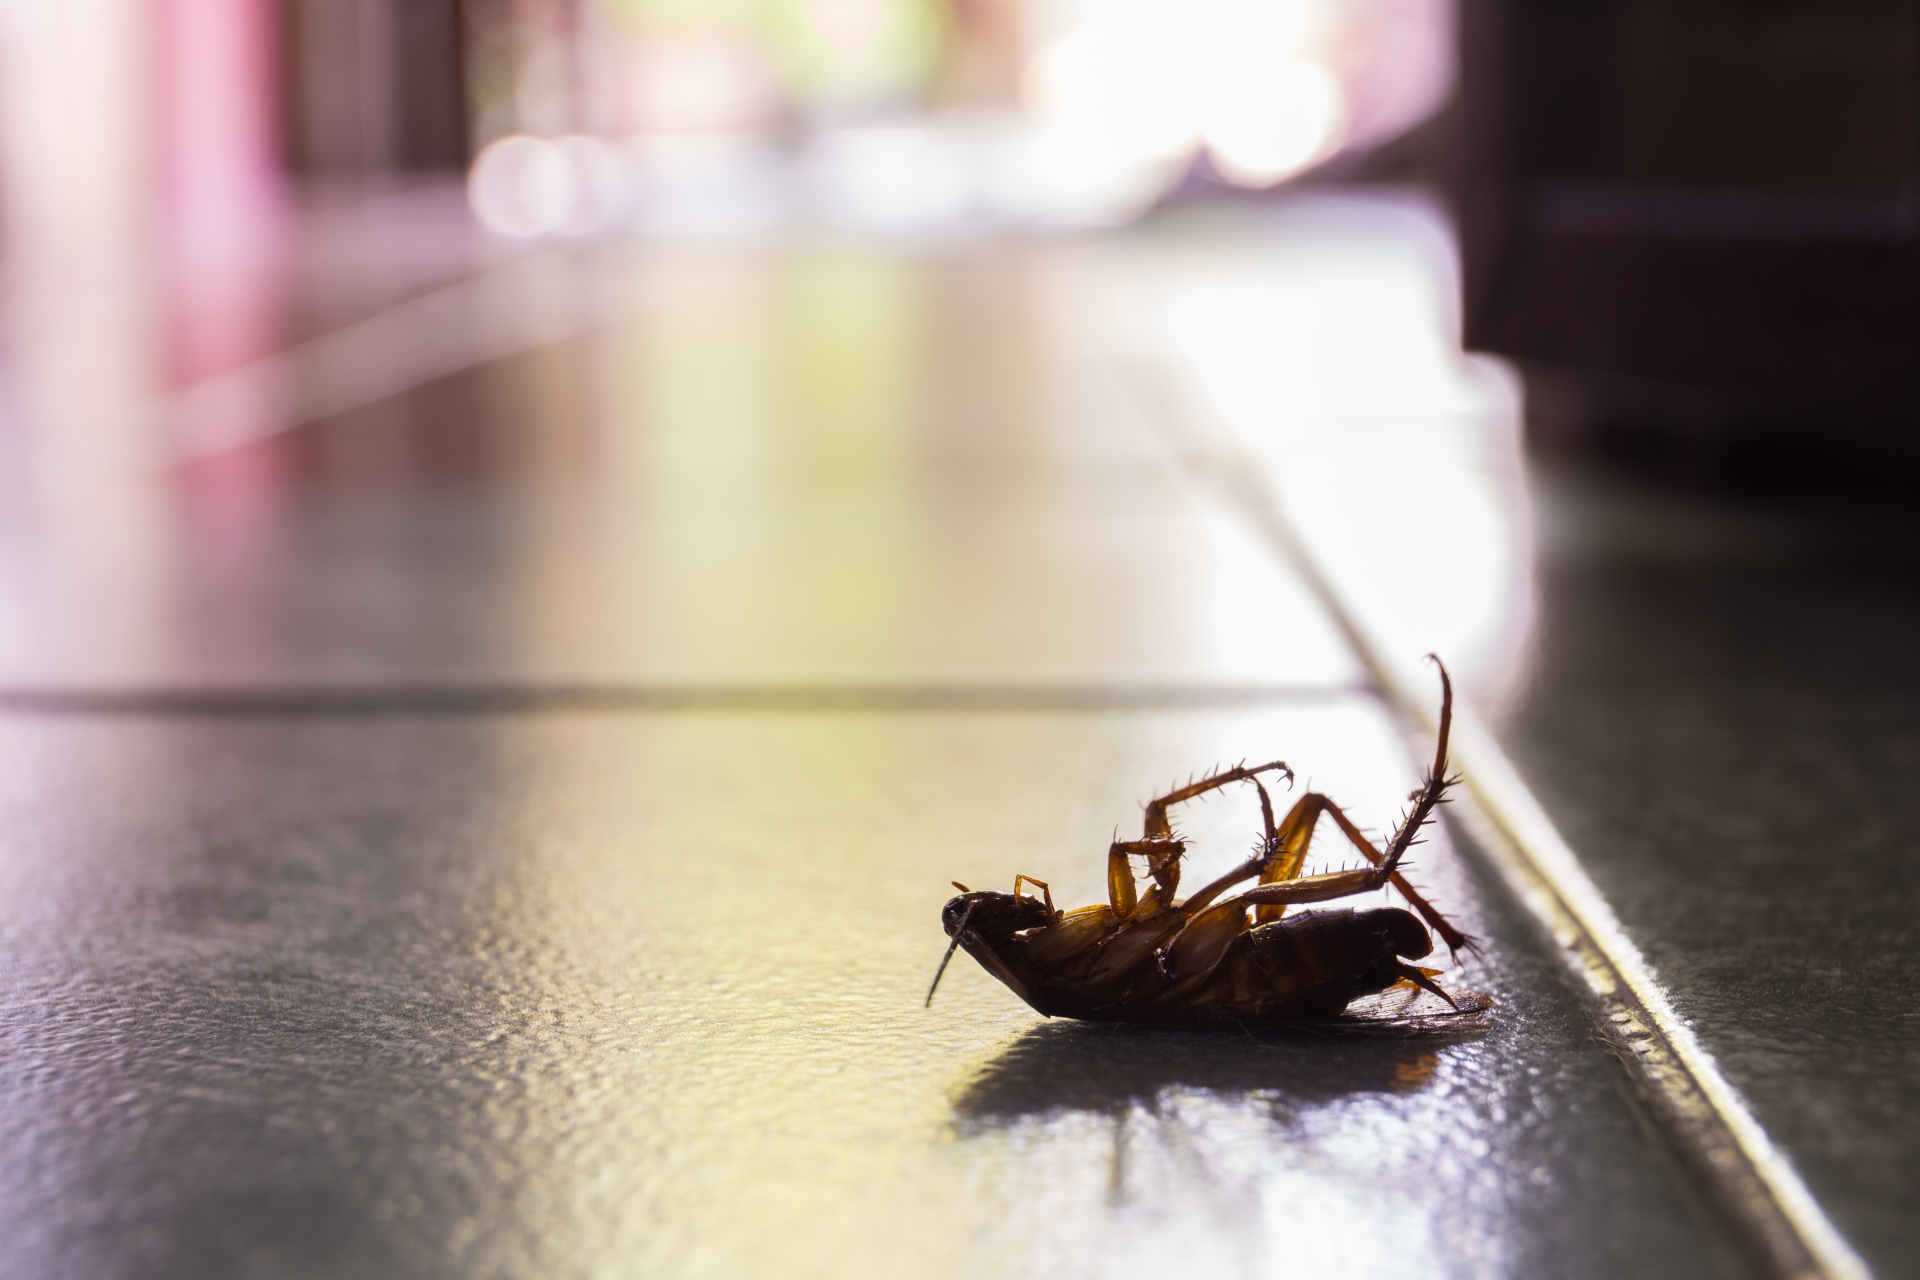 Cockroach Control, Pest Control in East Finchley, N2. Call Now 020 8166 9746